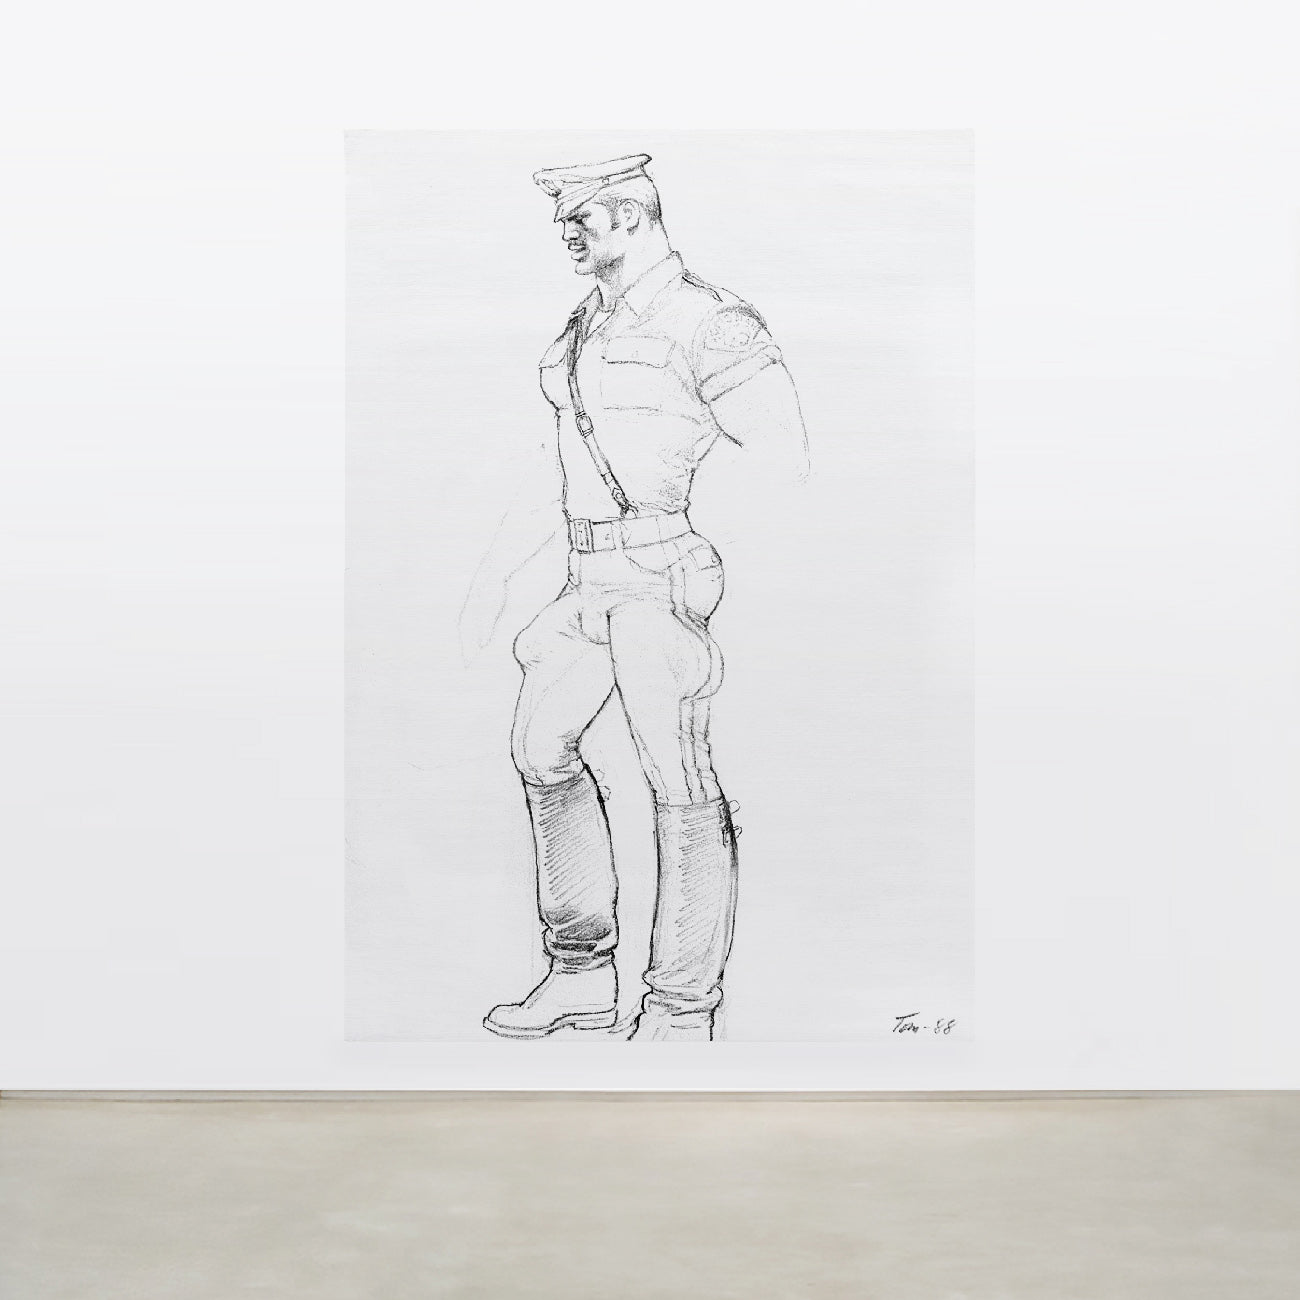 TOM OF FINLAND, UNTITLED, 1988 (0606)